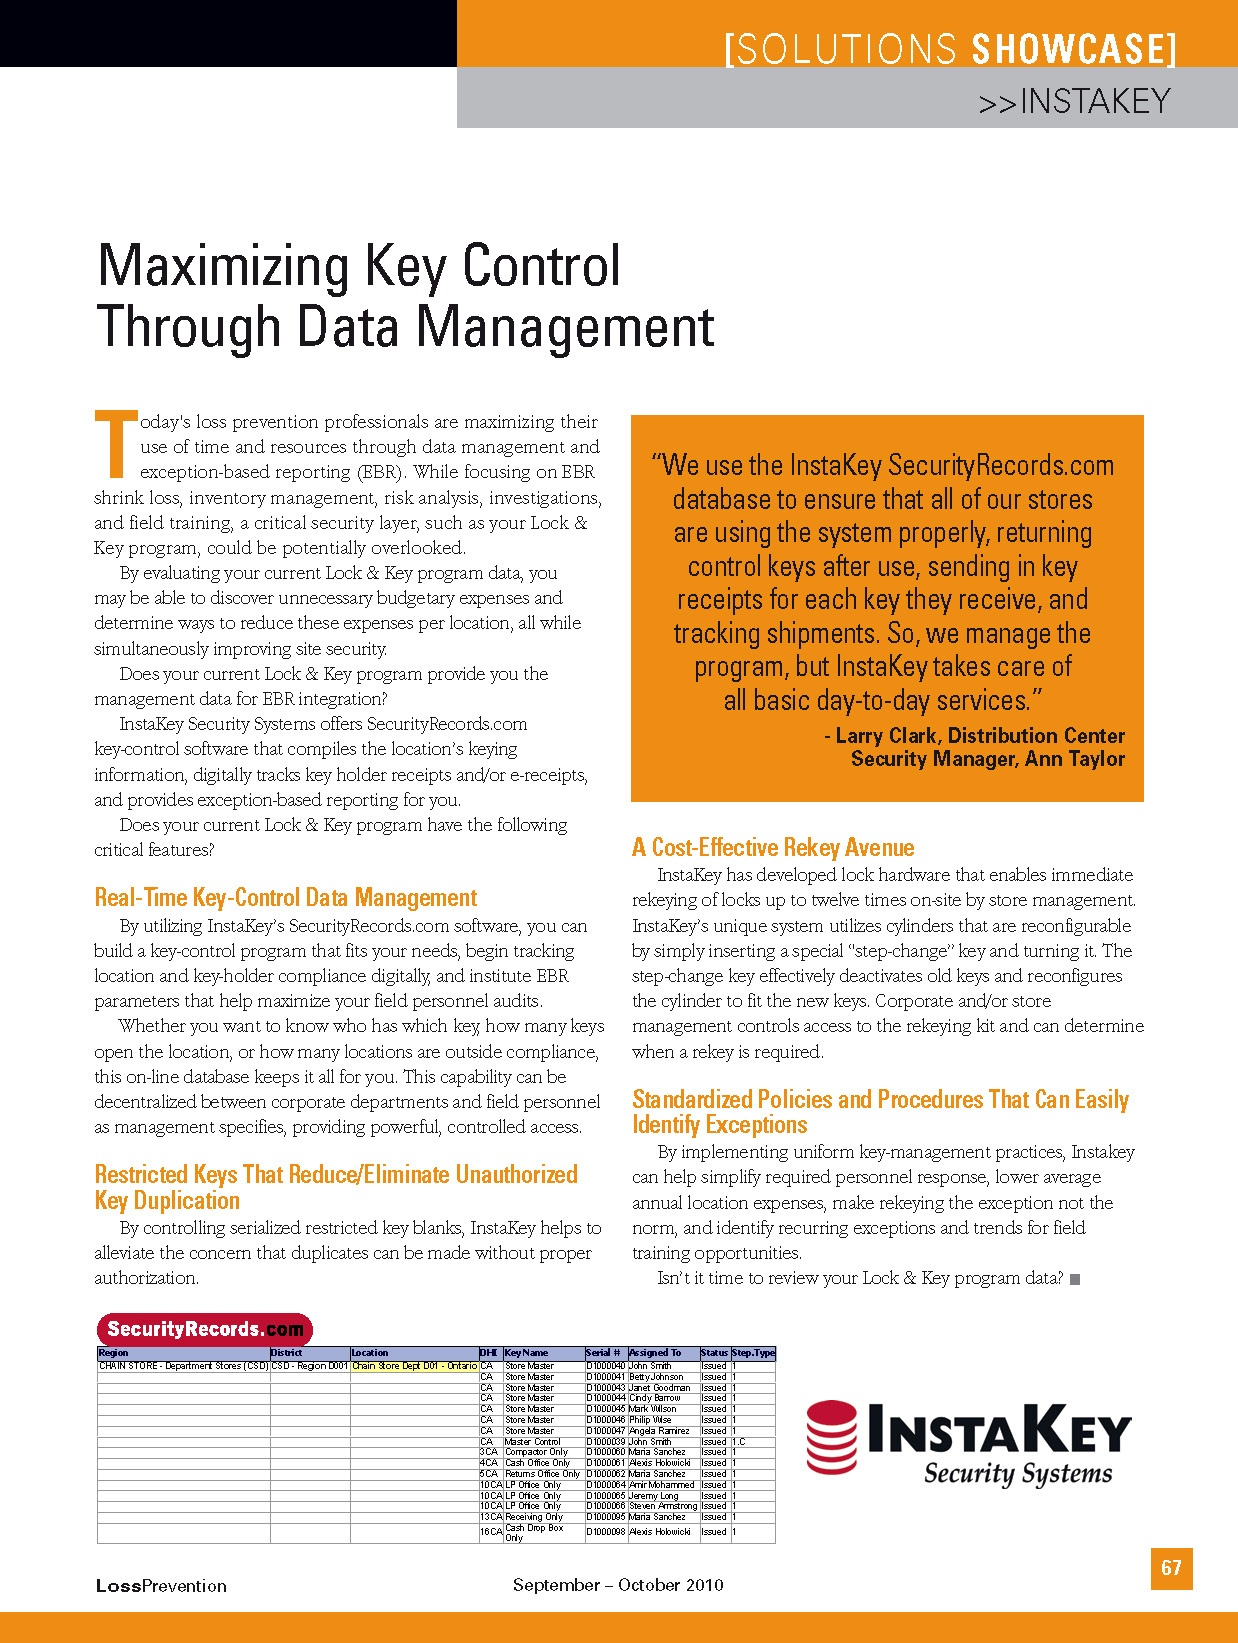 Maximizing Key Control Through Data Management